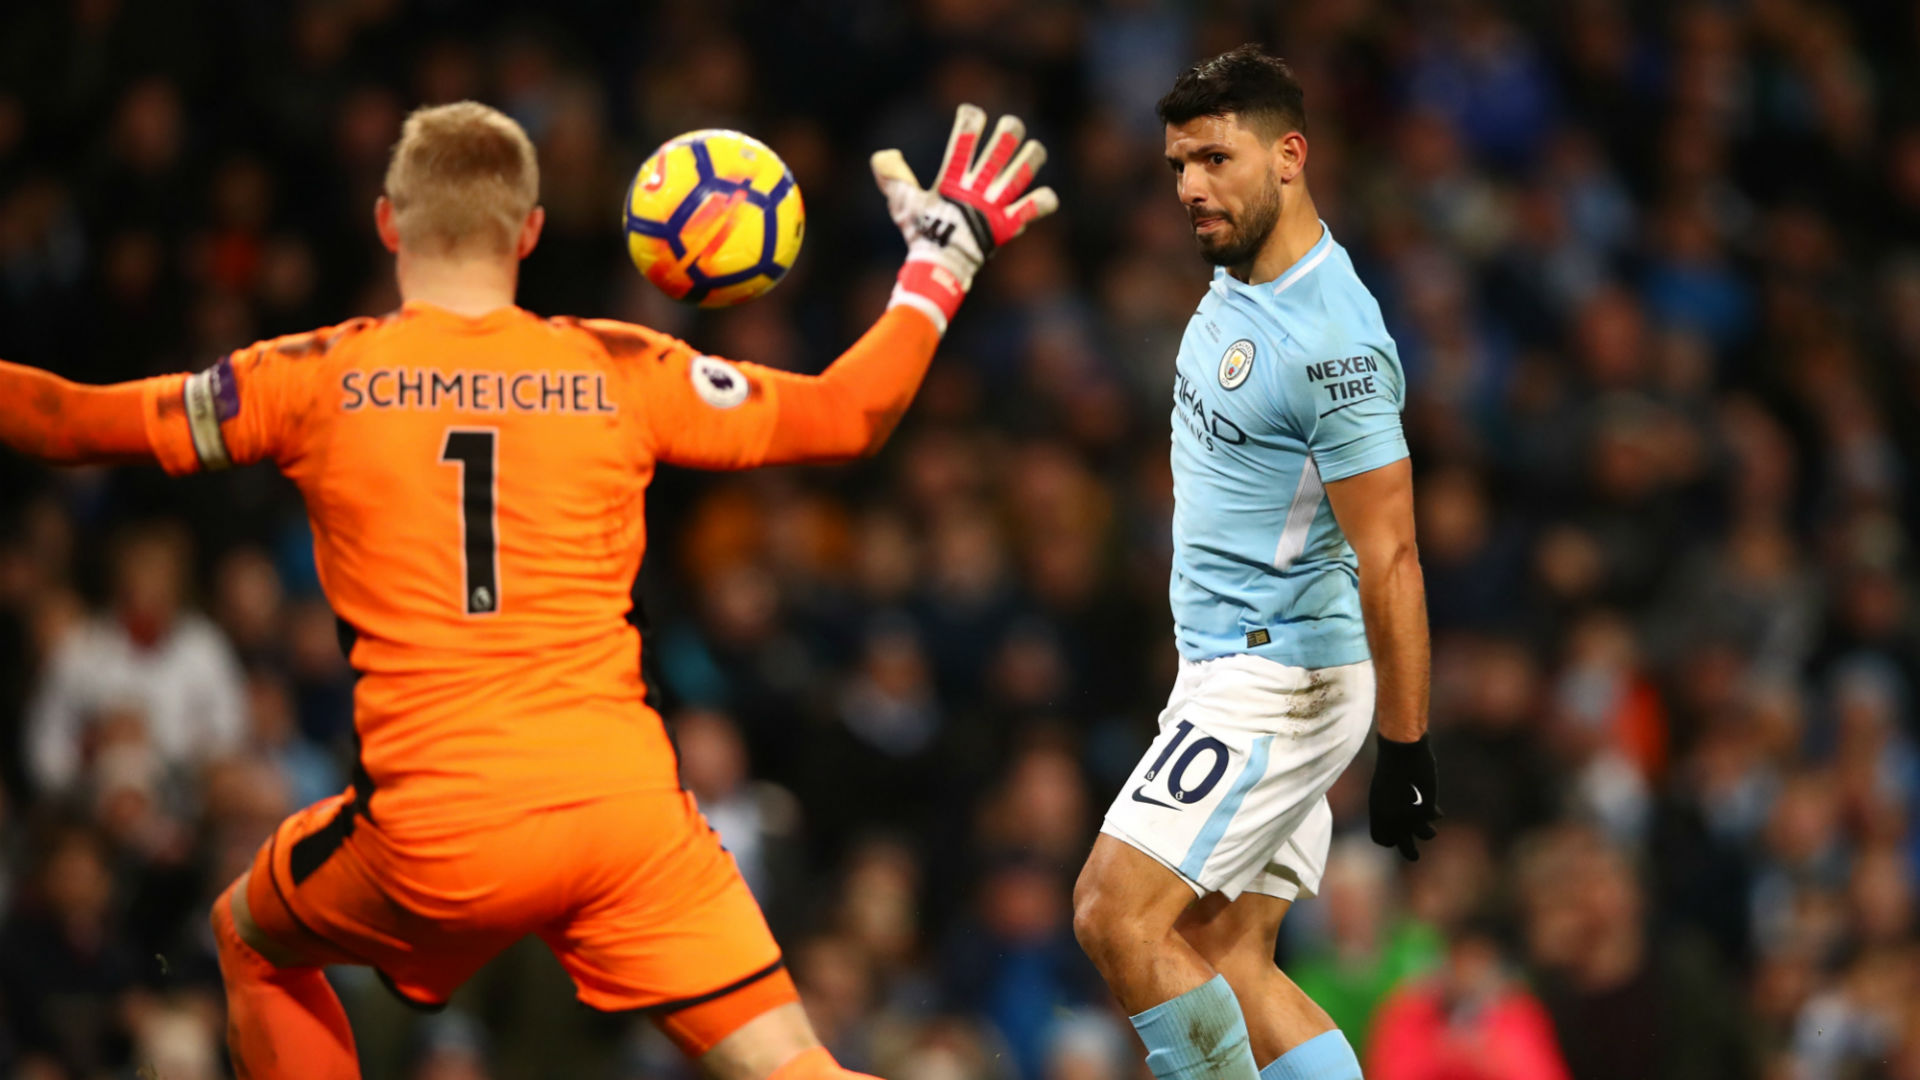 Manchester City vs Leicester City 10 February 2018: EPL Preview and Predictions